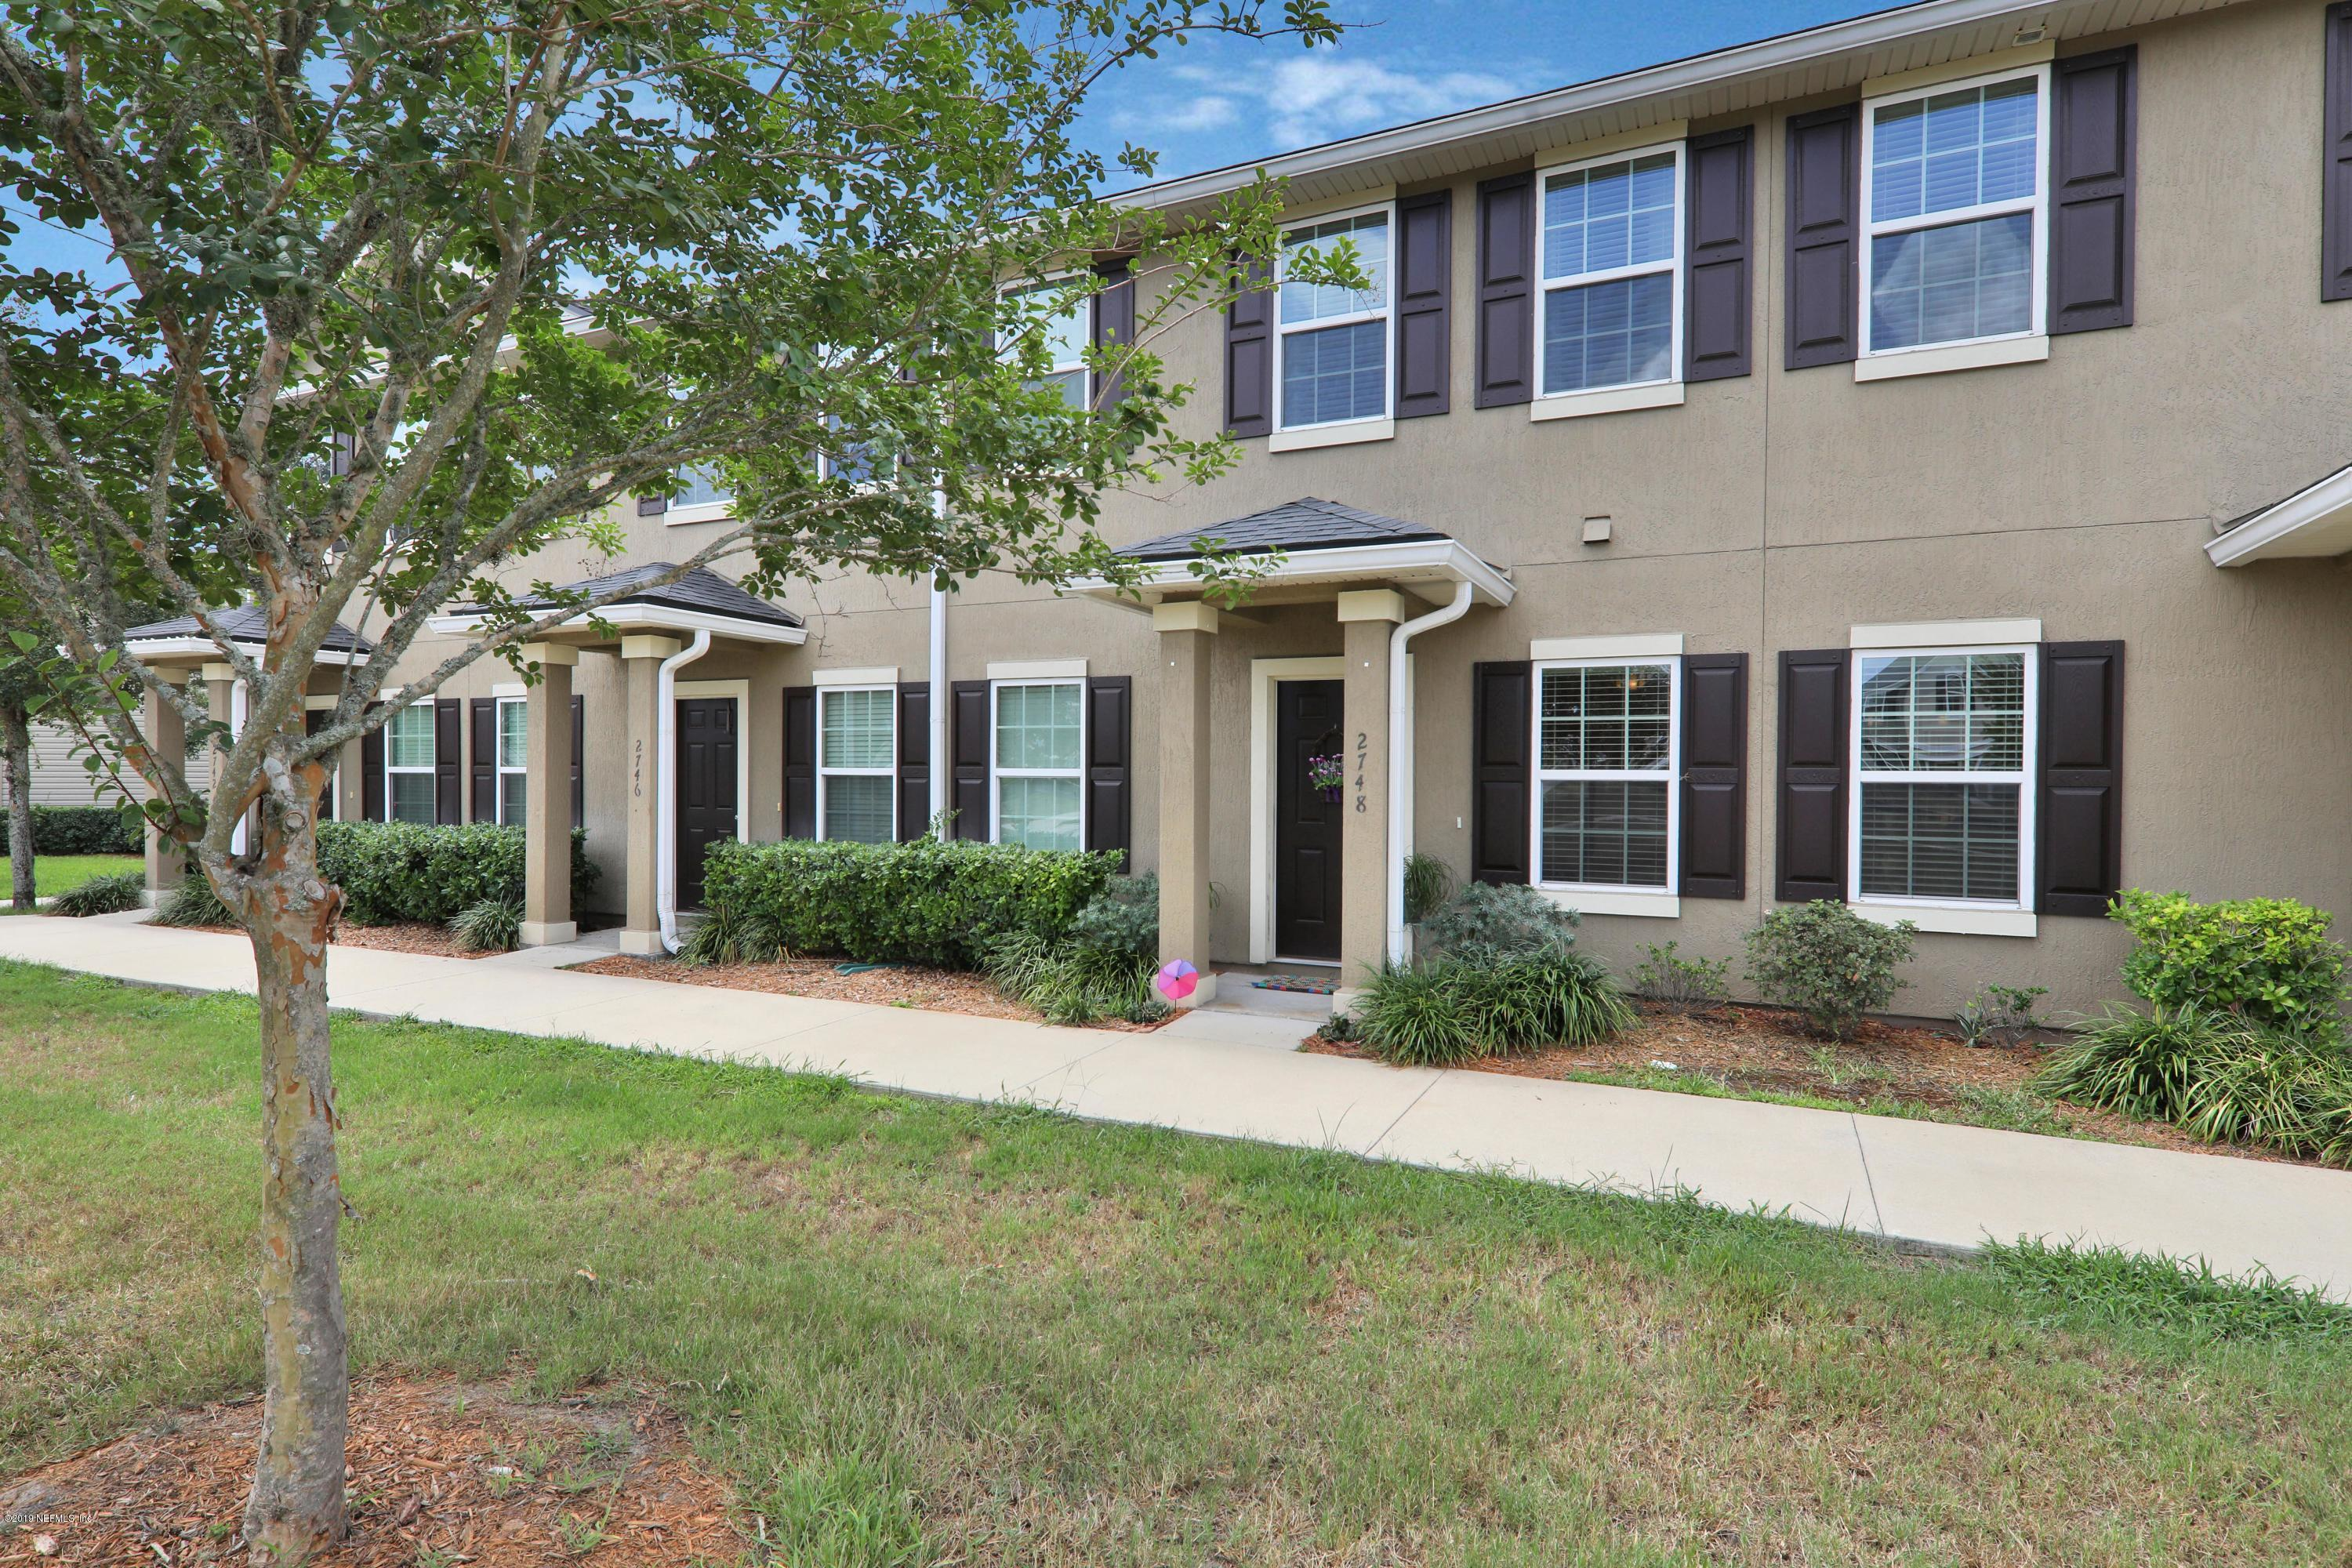 Photo of 2748 HOLLYBROOK, ORANGE PARK, FL 32073